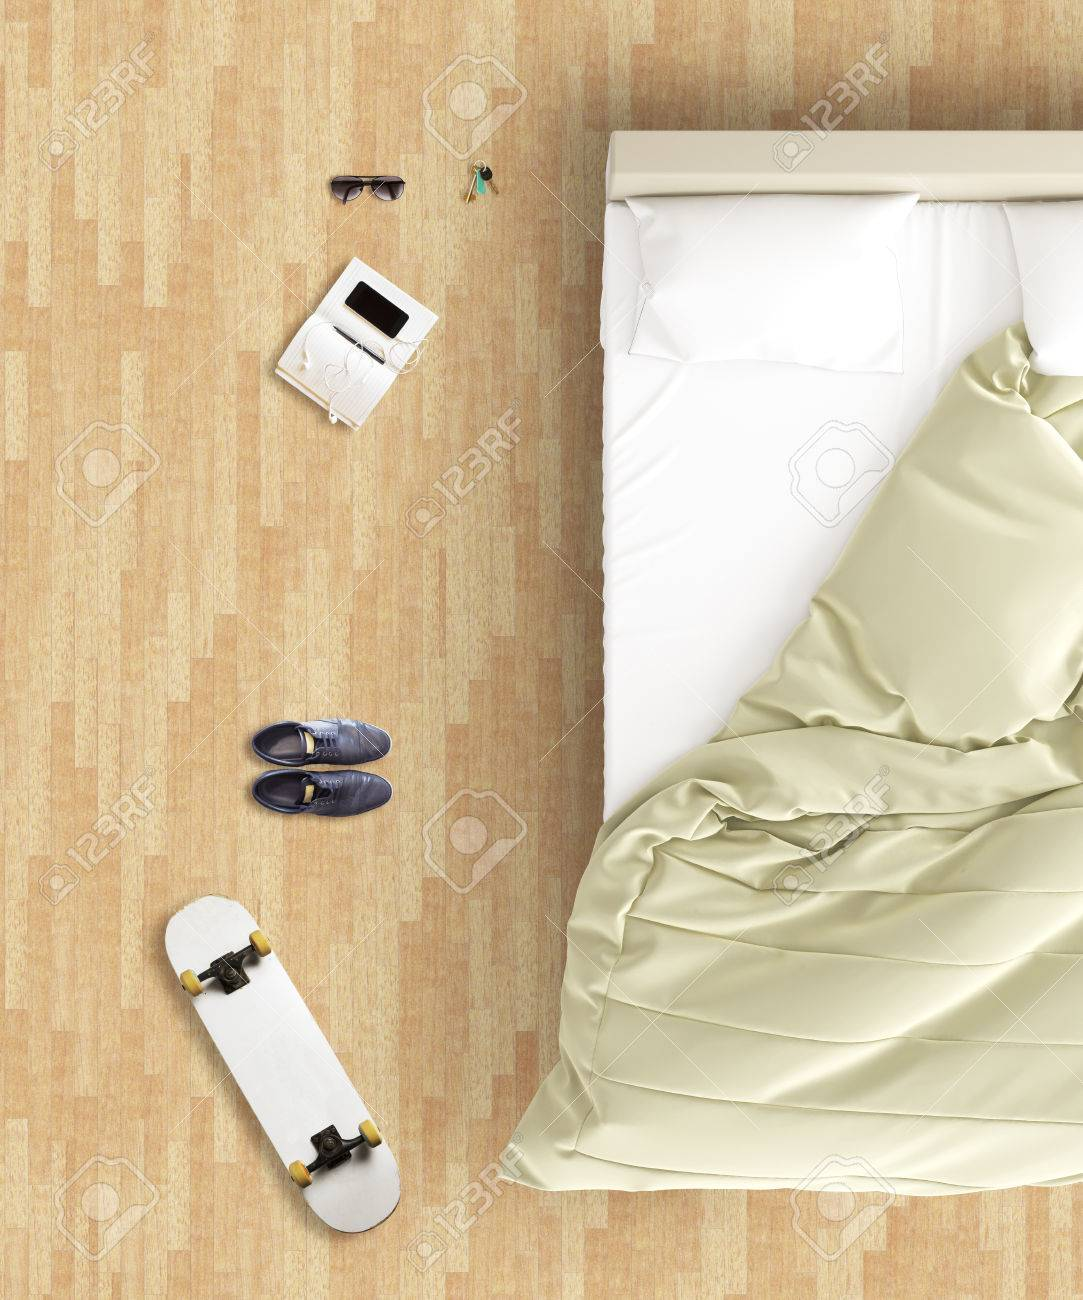 Skateboard Bedroom Top View Of Hipster Bedroom With Unmade Bed Skateboard Pair